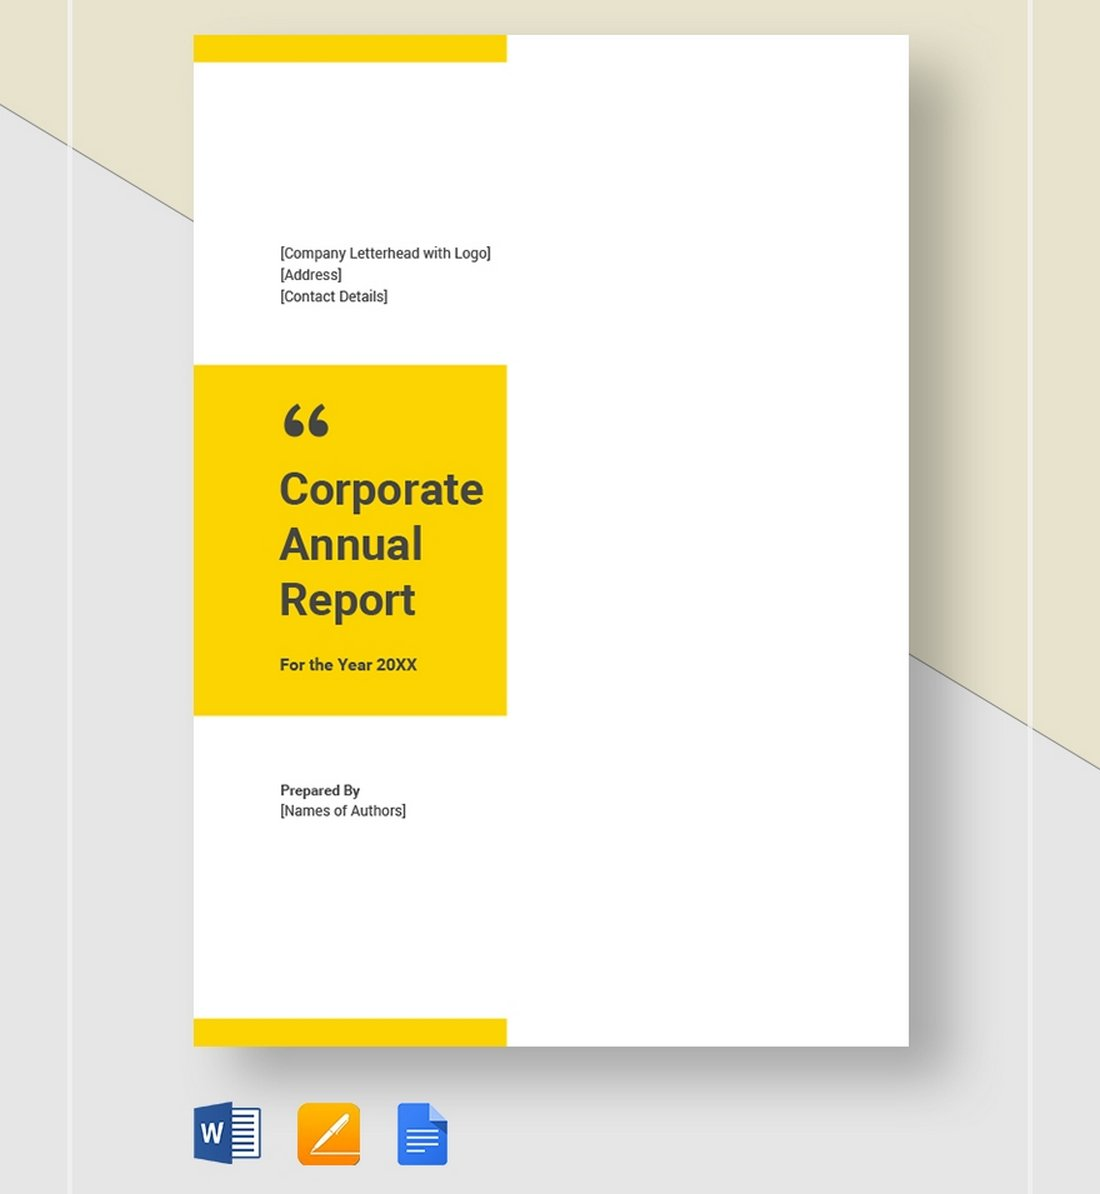 Free-Modern-Corporate-Annual-Report-Template 50+ Annual Report Templates (Word & InDesign) 2021 design tips